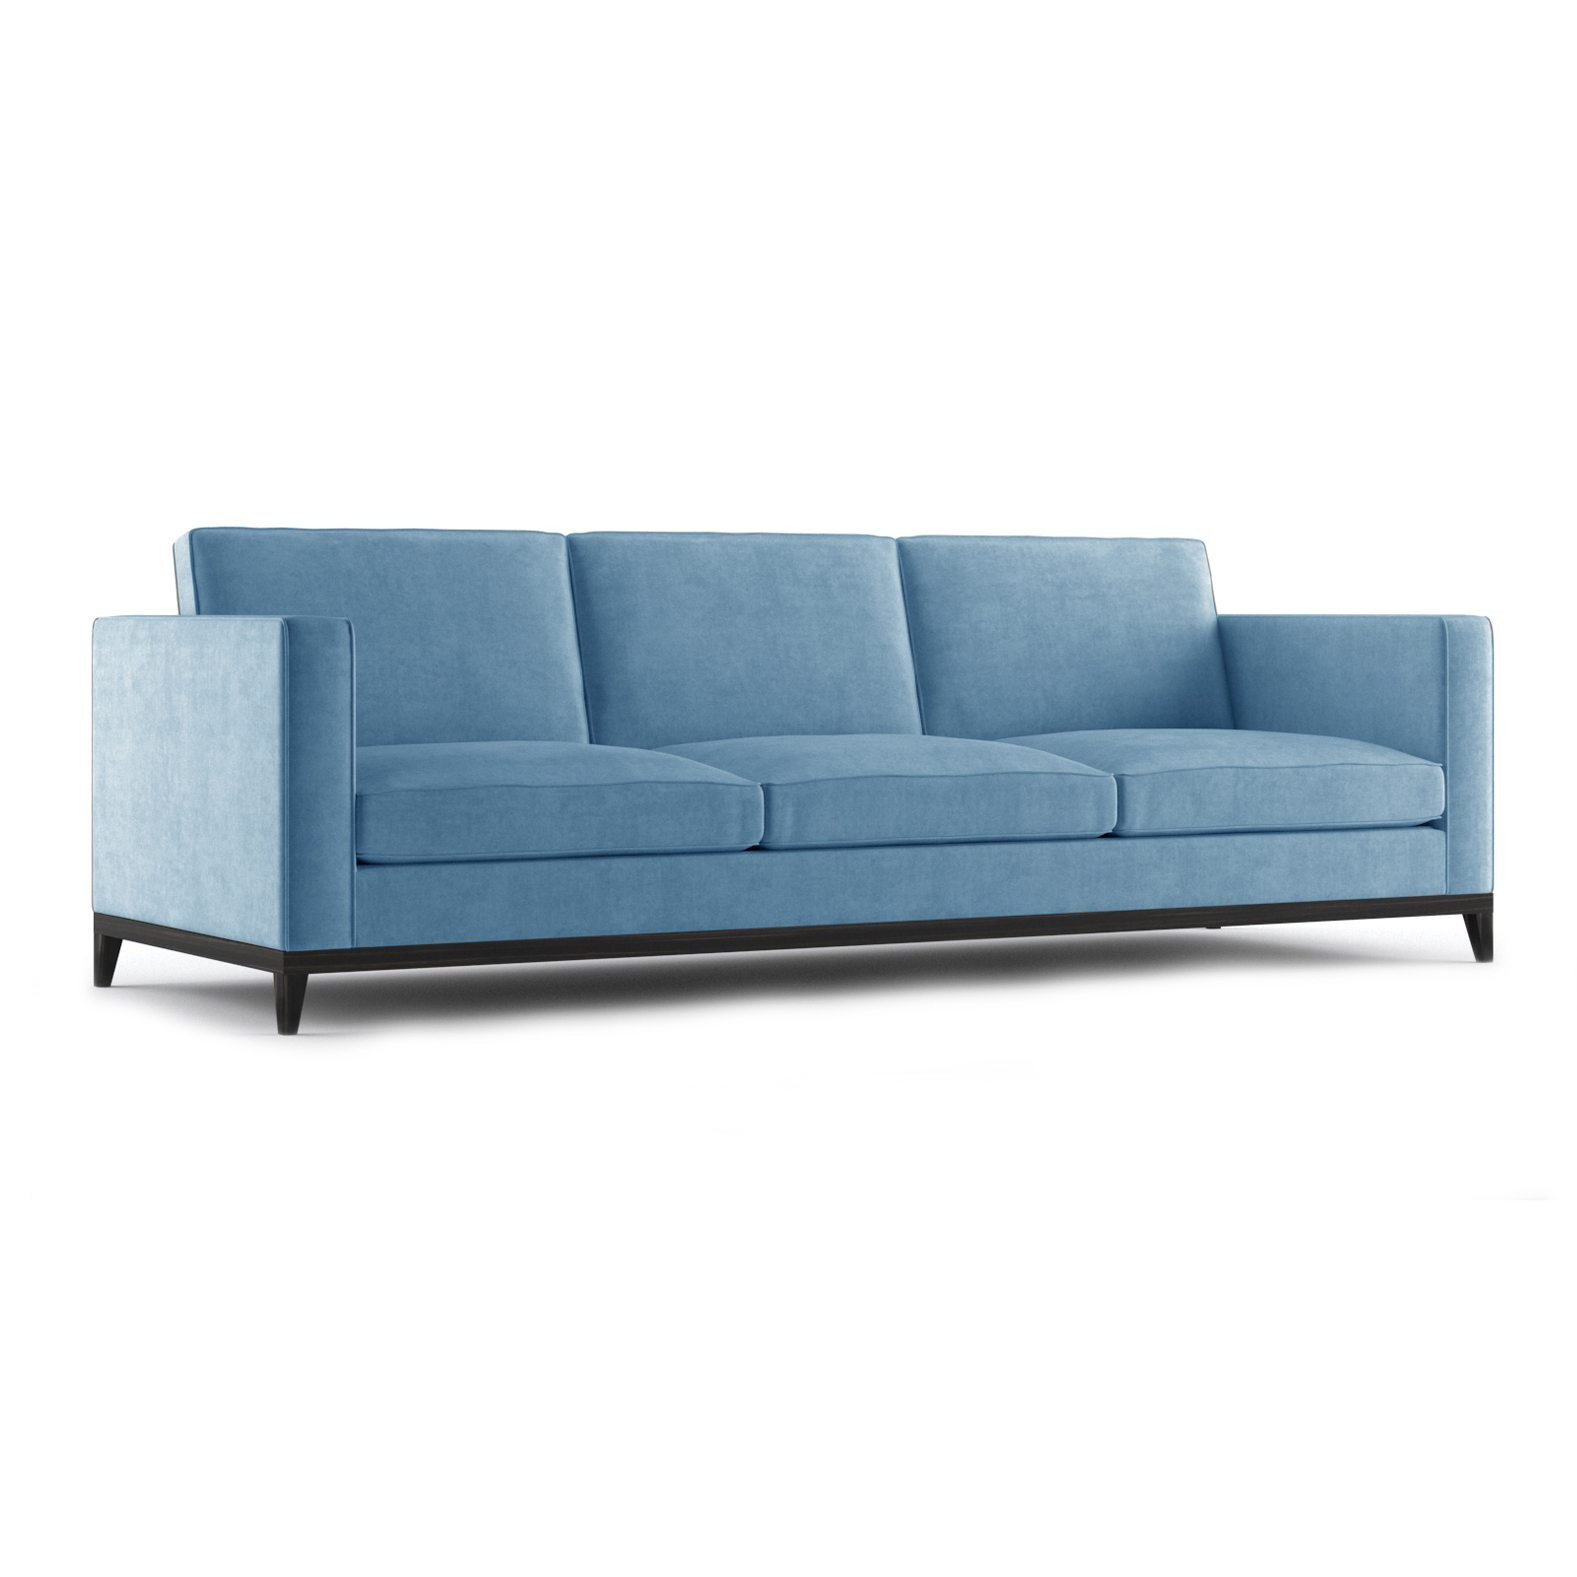 Armstrong Three and a Half Seater Sofa by Bonham & Bonham Blue 12